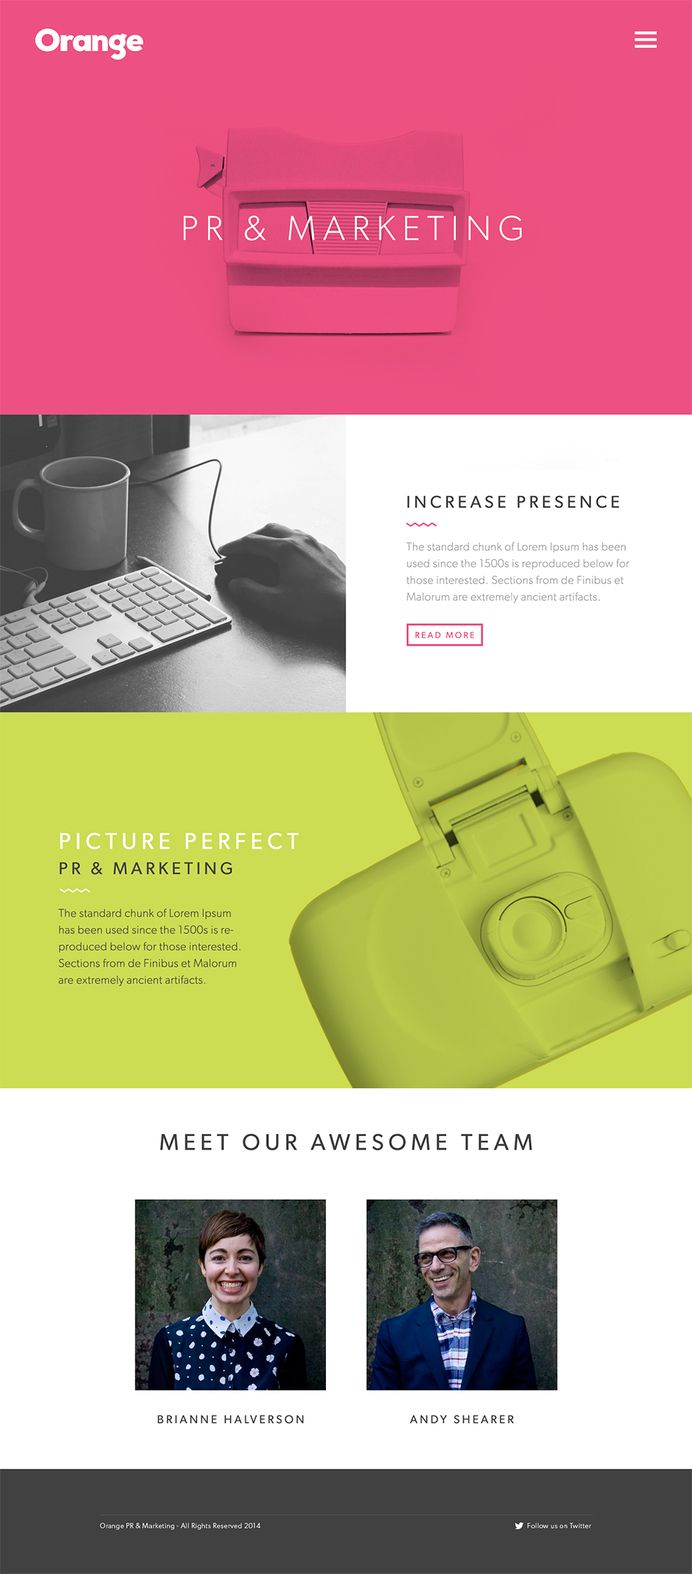 Orange PR & Marketing Landing Page — Designspiration